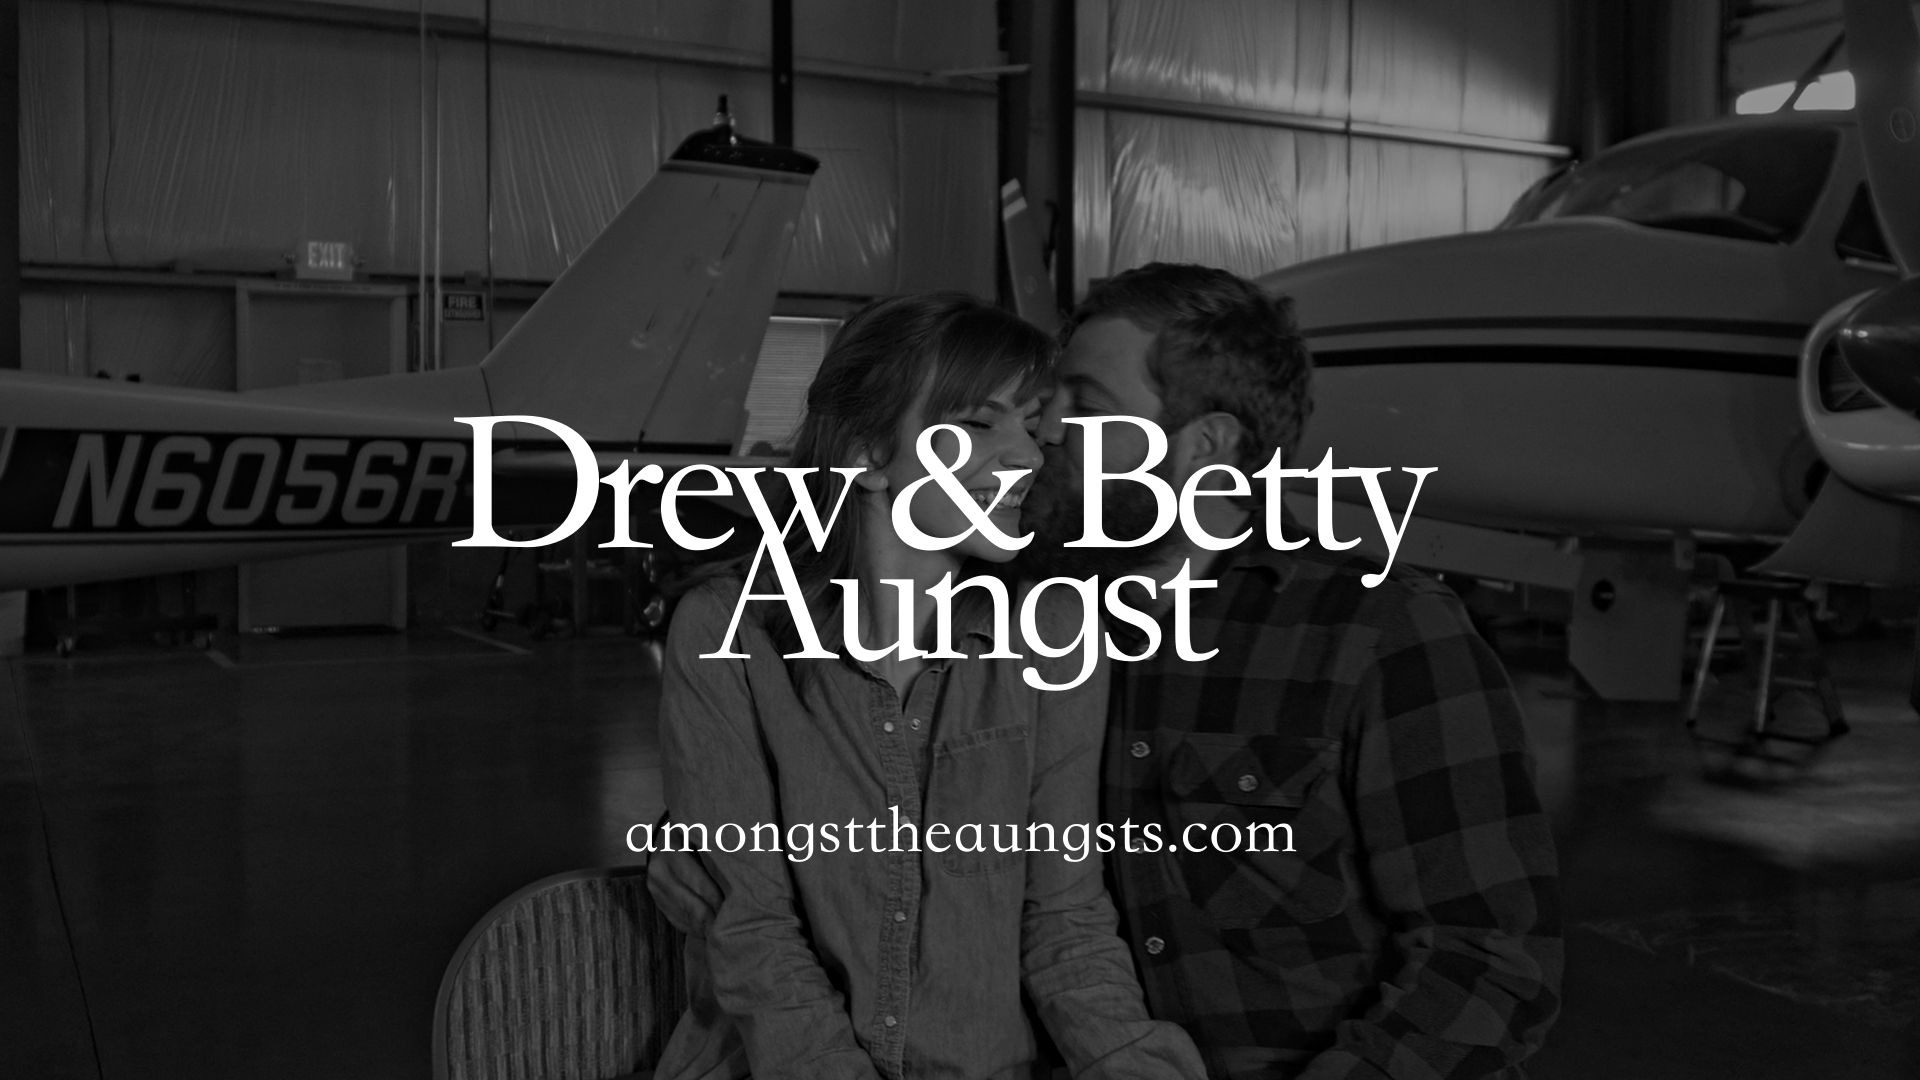 Drew & Betty Aungst